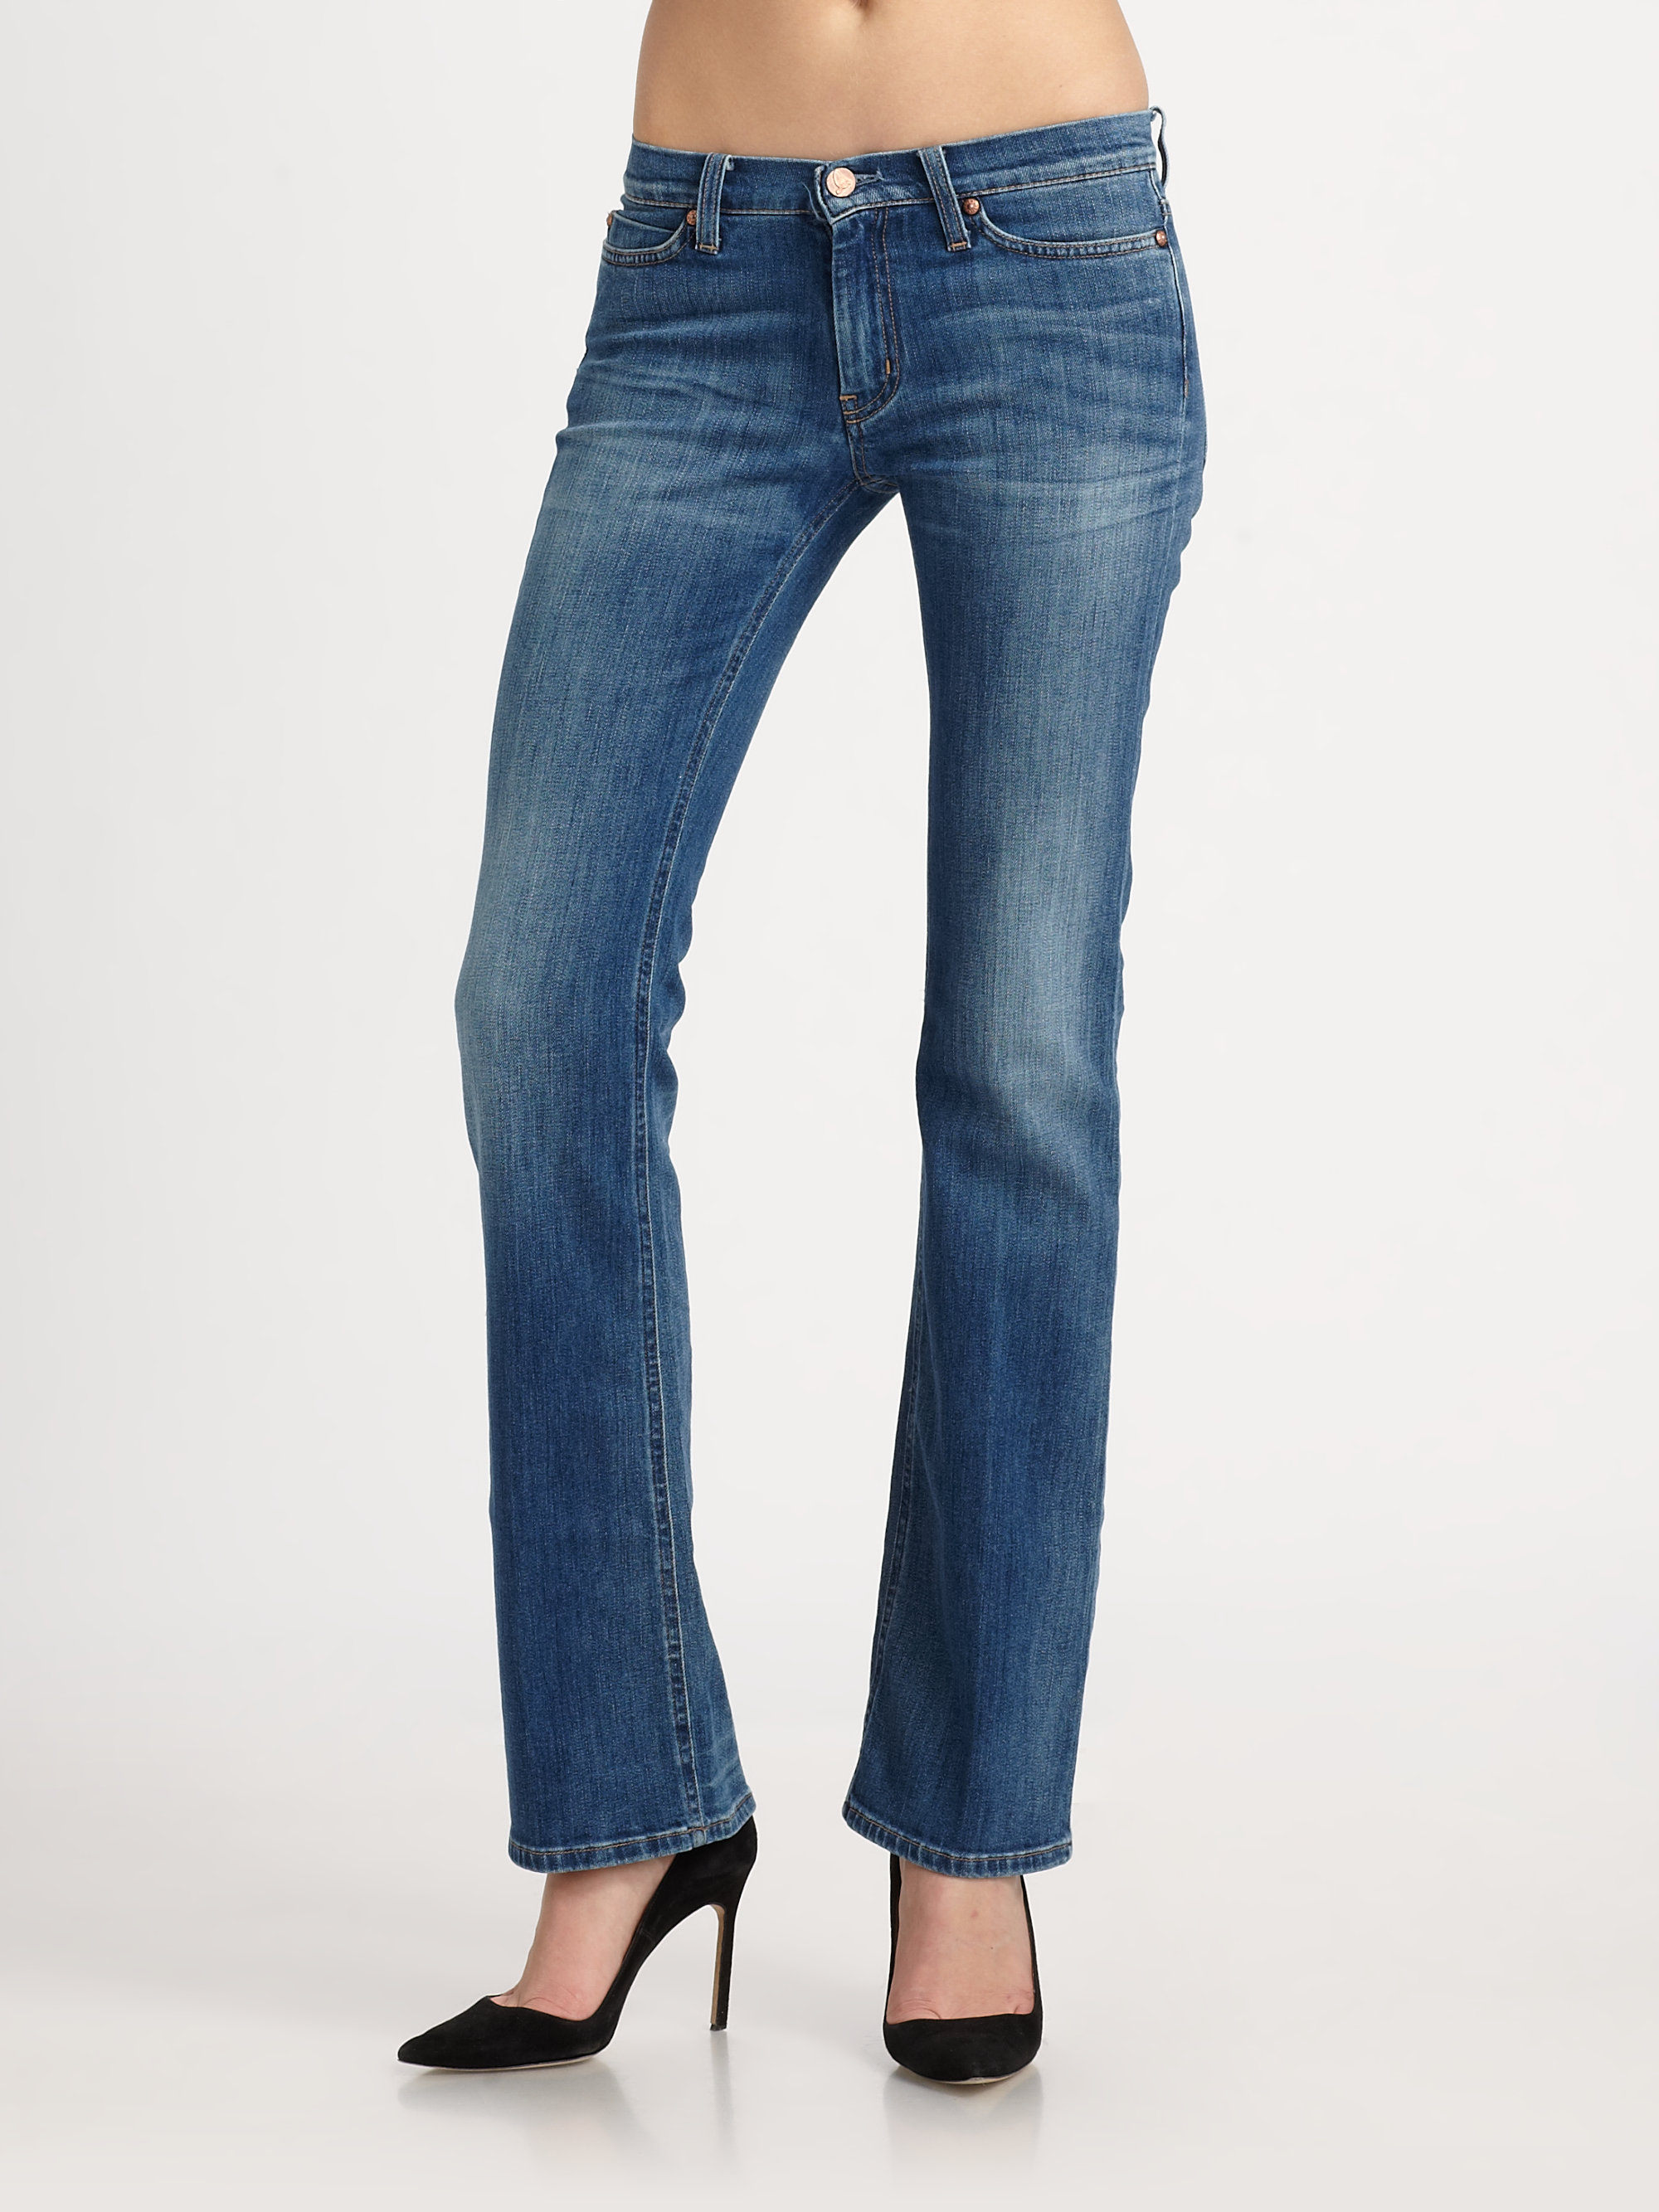 boot-cut jeans - Blue Mih Jeans Outlet Ebay Buy Cheap Cheapest Price UFnHWRUW